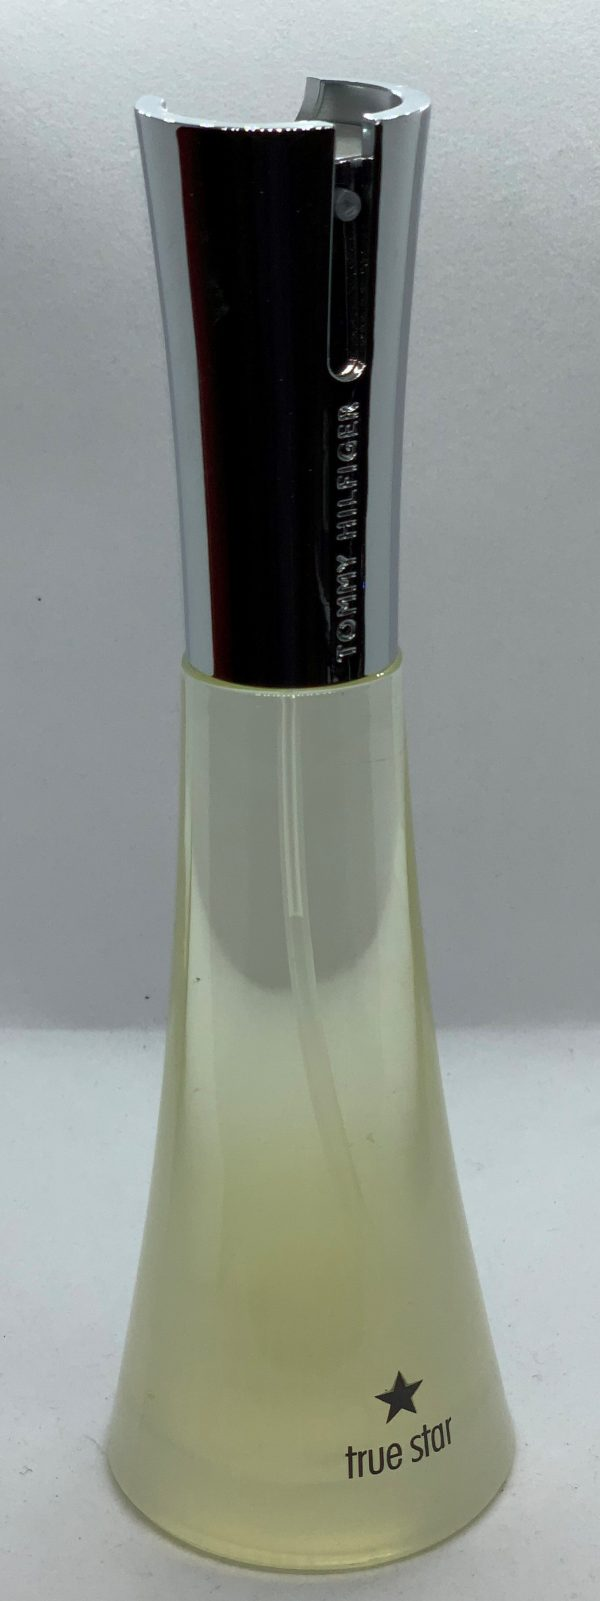 True star by Tommy Hilfiger parfume for women